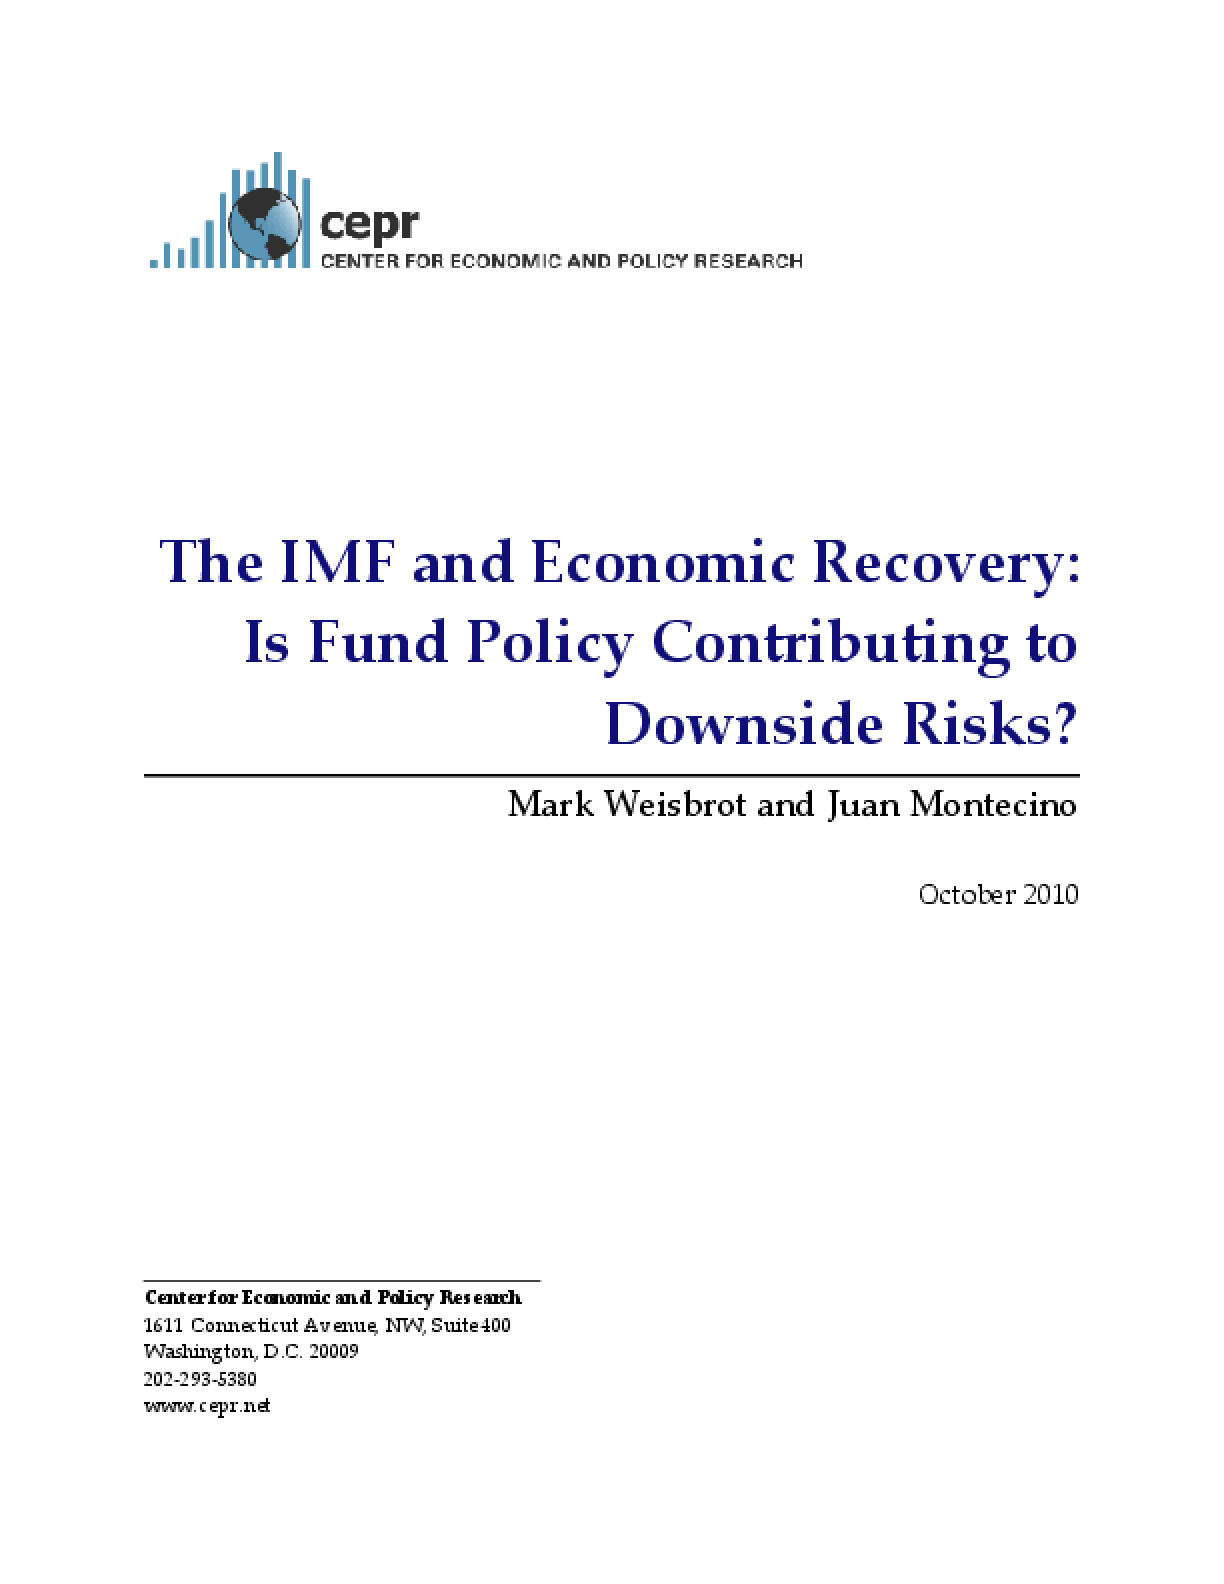 The IMF and Economic Recovery: Is Fund Policy Contributing to Downside Risks?